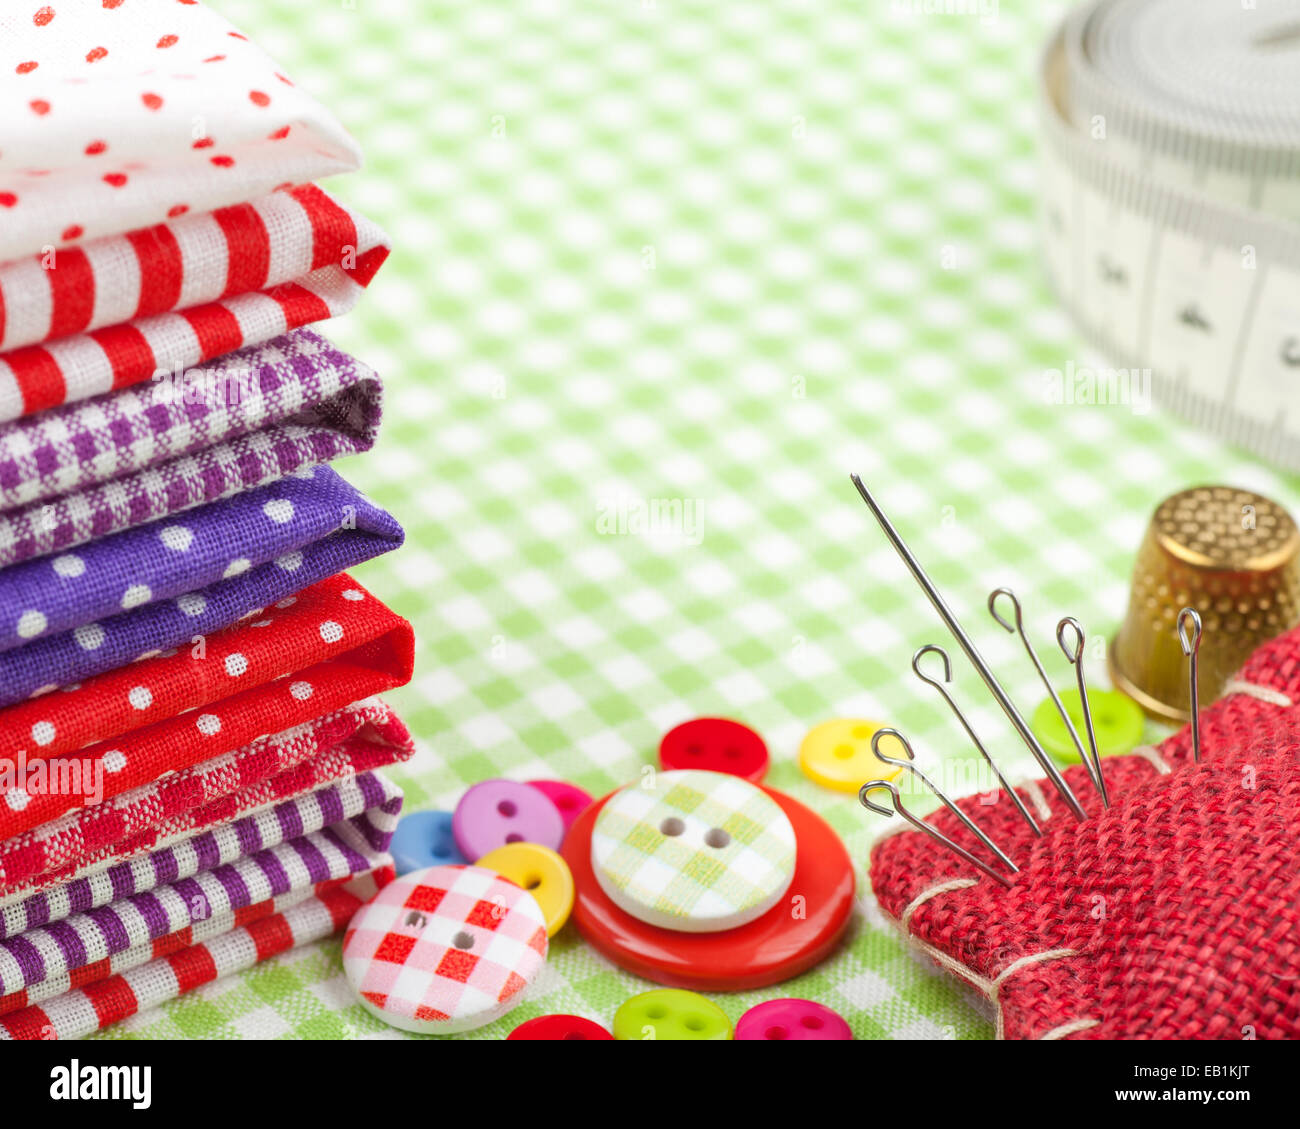 Sewing items: buttons, colorful fabrics, measuring tape, pin cushion, thimble - Stock Image